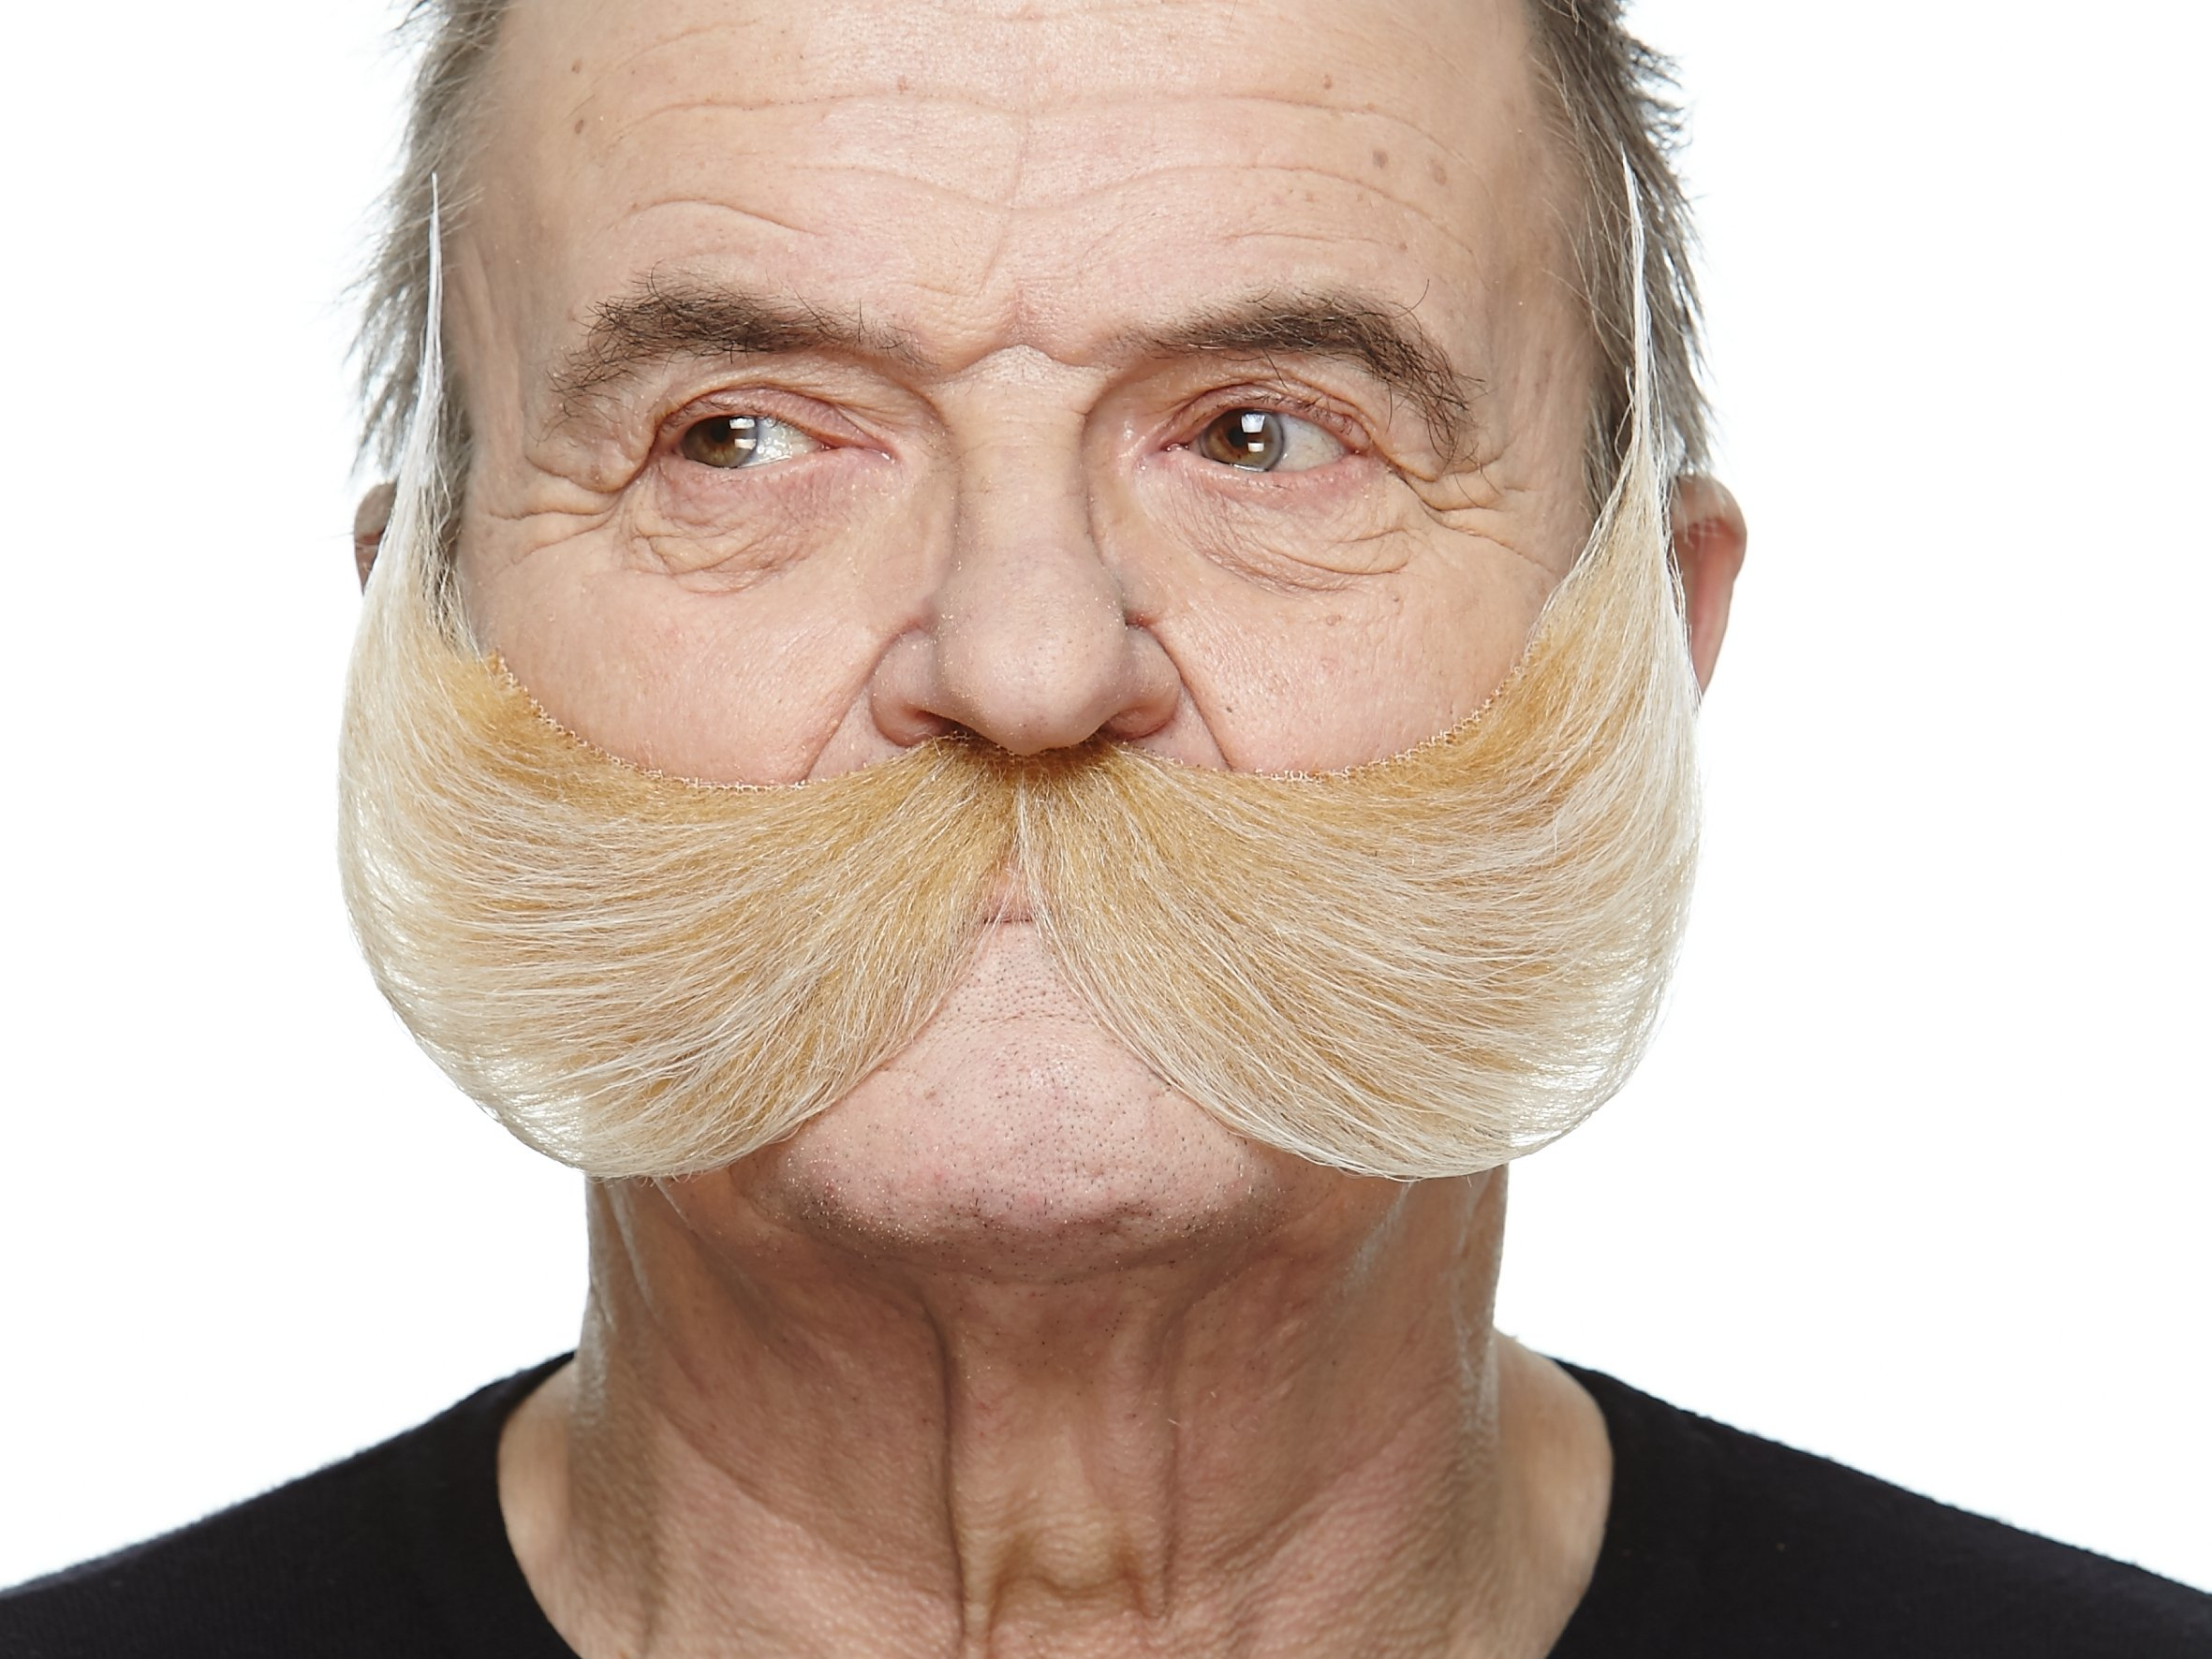 Mustaches Self Adhesive, Novelty, Fake Fisherman's, Blond Color